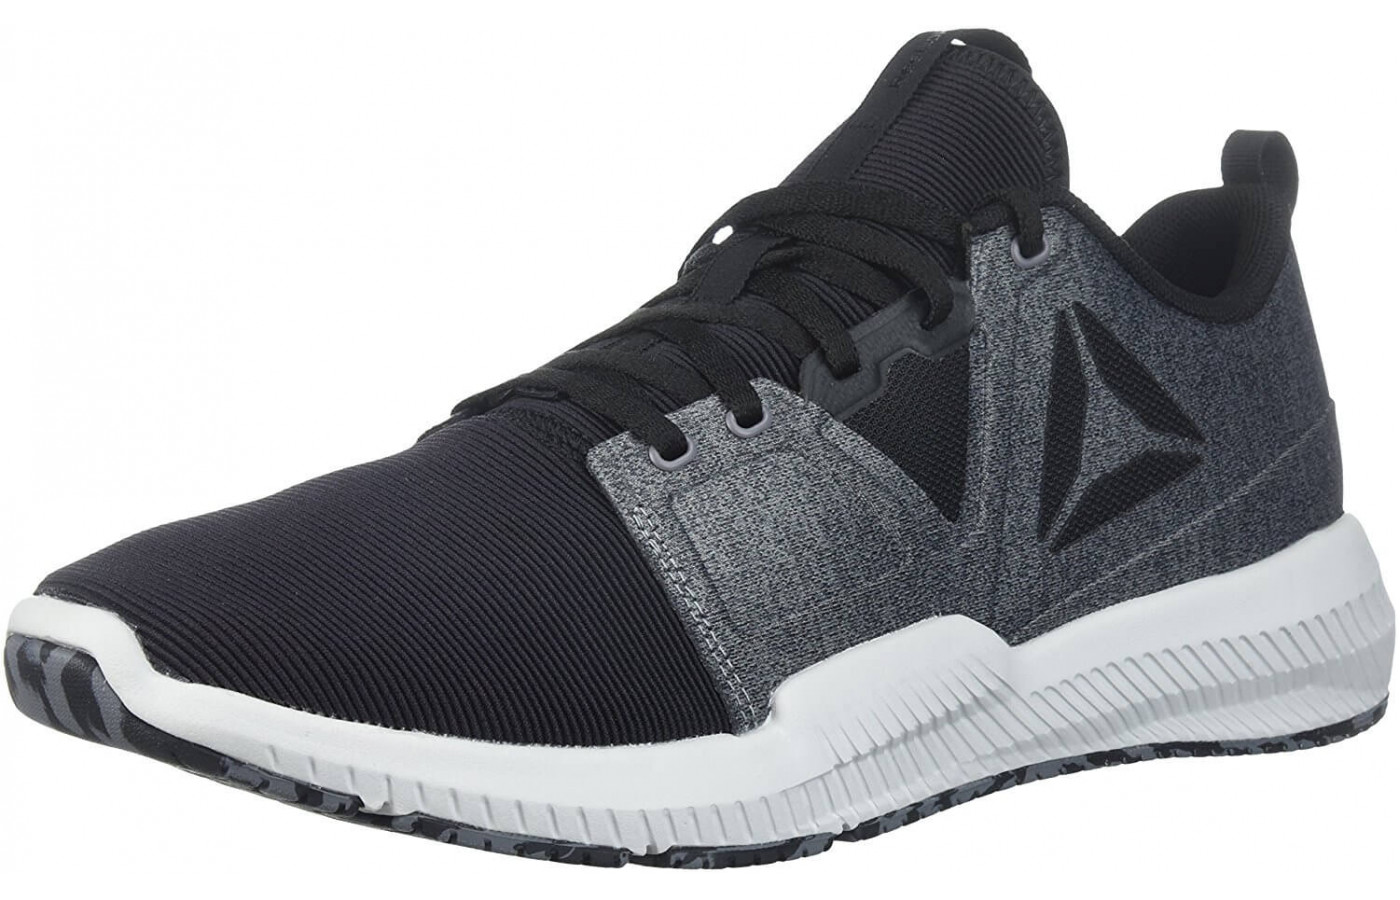 The Hydrorush TR works as a training or casual running shoe